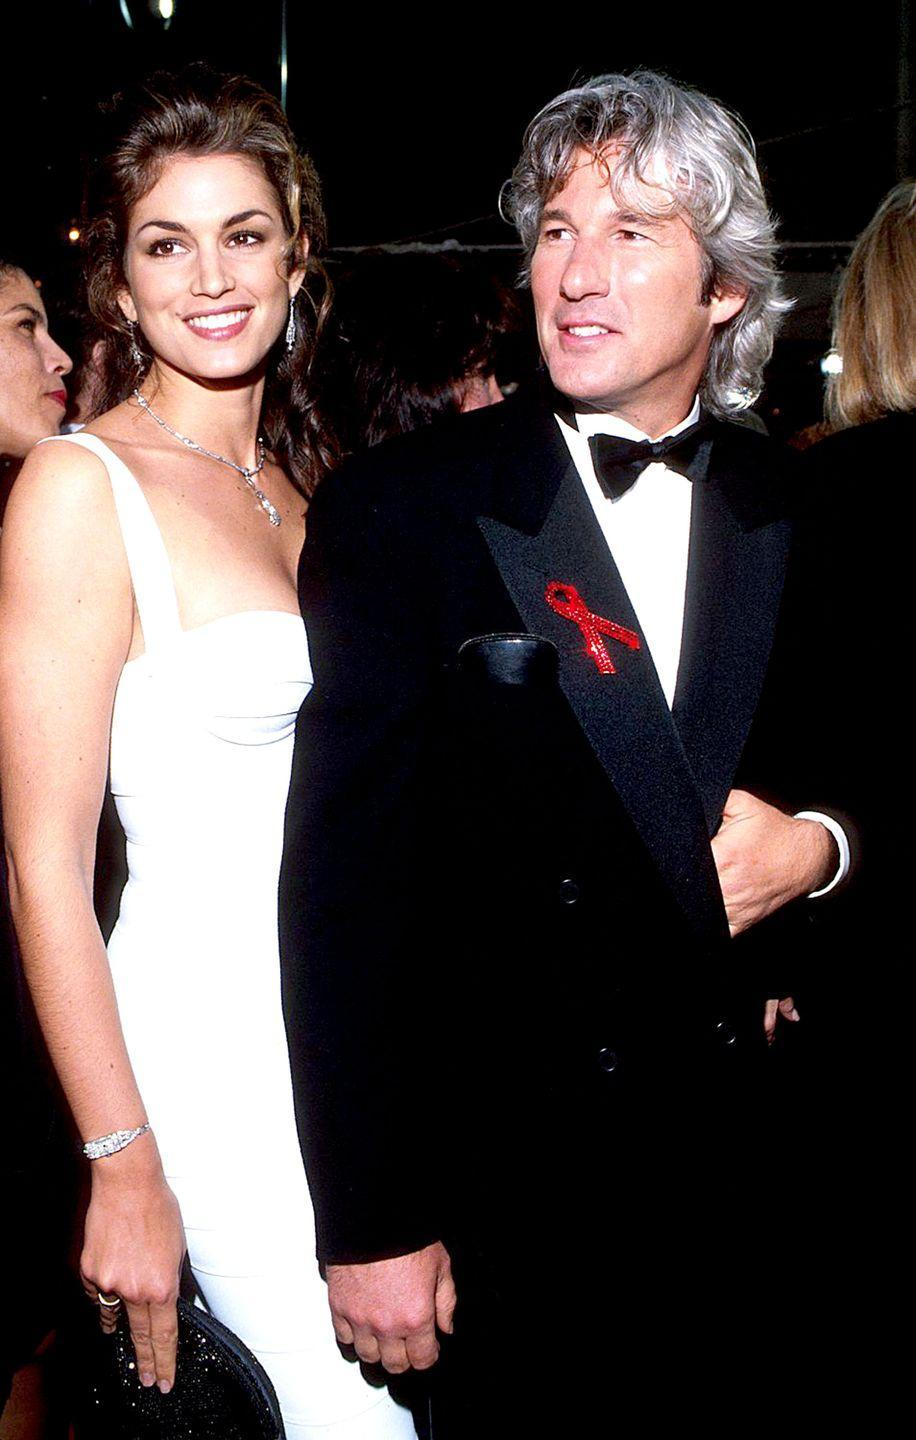 """<p>The couple met at a backyard BBQ at the home of their mutual friend, portrait photogrpaher Herb Ritts in 1988. Sure, Crawford was only 22-years-old when she met the 39-year-old <em>Pretty Woman</em> actor but love conquers all! The pair exchanged vows in December of 1991 at the Sin City chapel in Las Vegas, but would announce their divorce in 1995. </p><p>""""I think I was more willing at 22 to be, like, 'Okay, I'll follow,' but then you start going, 'Well, I don't want to just follow—I want to lead sometimes and I want to walk side by side sometimes,'"""" <a href=""""https://www.crfashionbook.com/celebrity/a23620918/cindy-crawford-richard-gere-wedding-vegas/#"""" rel=""""nofollow noopener"""" target=""""_blank"""" data-ylk=""""slk:she said"""" class=""""link rapid-noclick-resp"""">she said</a> on why they broke up.</p>"""